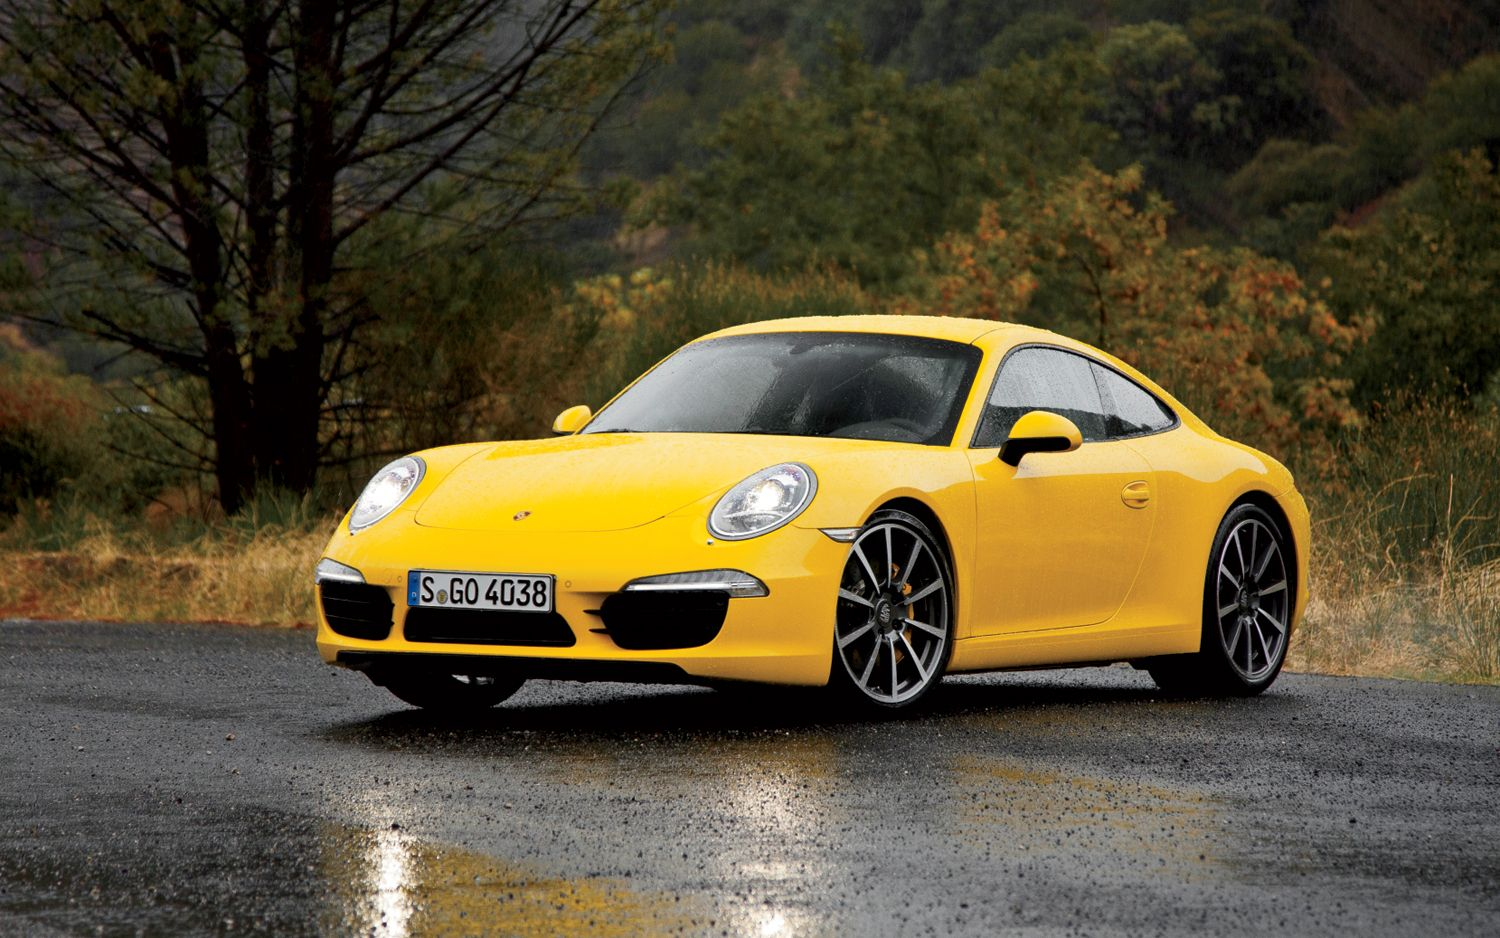 recall central 2012 porsche 911 carrera s recalled for fire risk gmc savana and yukon xl. Black Bedroom Furniture Sets. Home Design Ideas